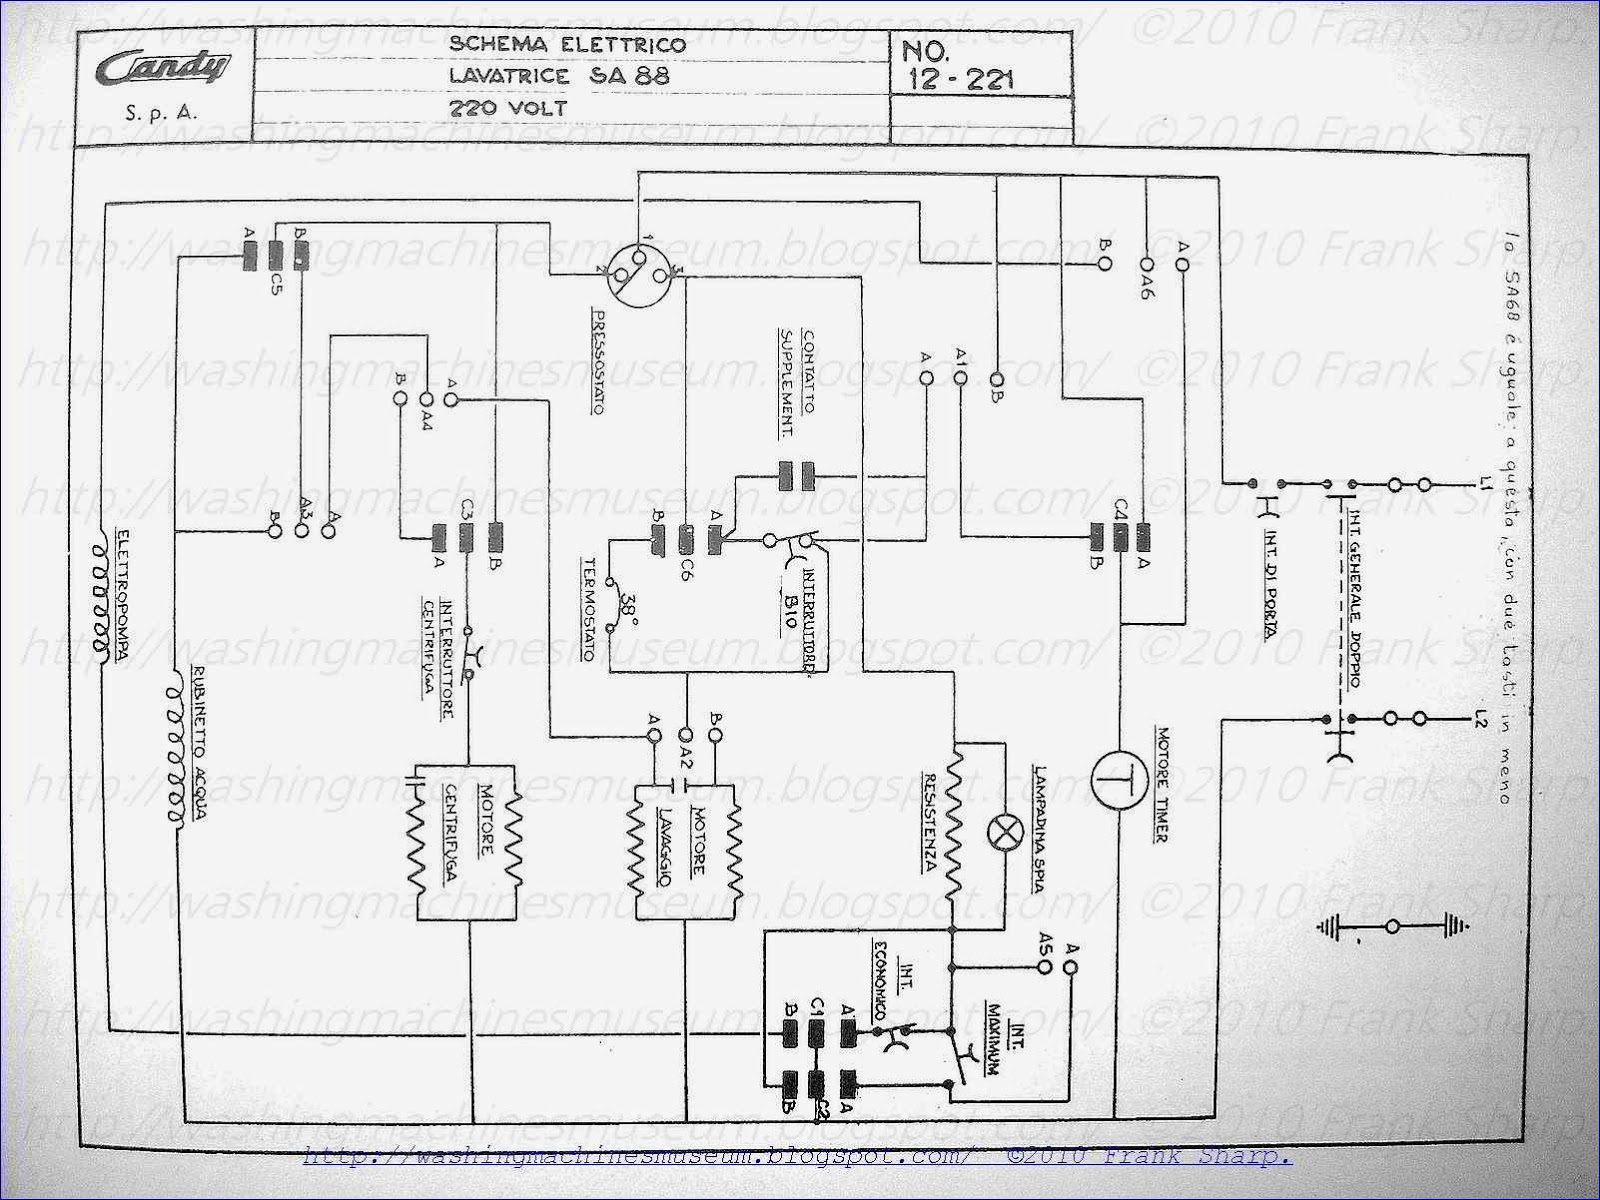 washing machine schematic - wiring diagram fully automatic washing machine wiring diagram #5